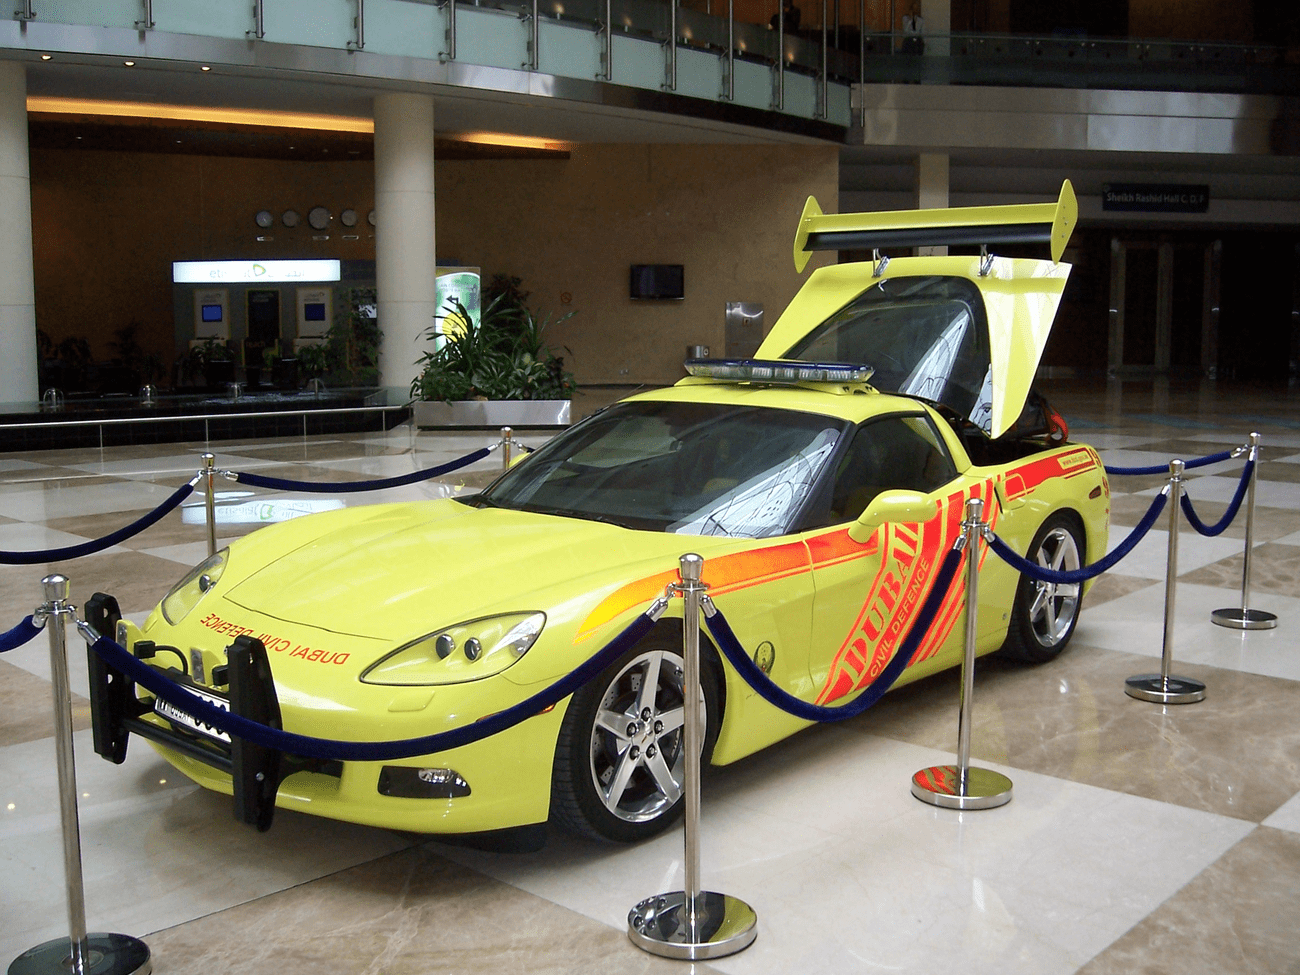 One of Dubai Civil Defence's Corvette Stingray fast response cars pictured at an annual Intersec Exhibition.